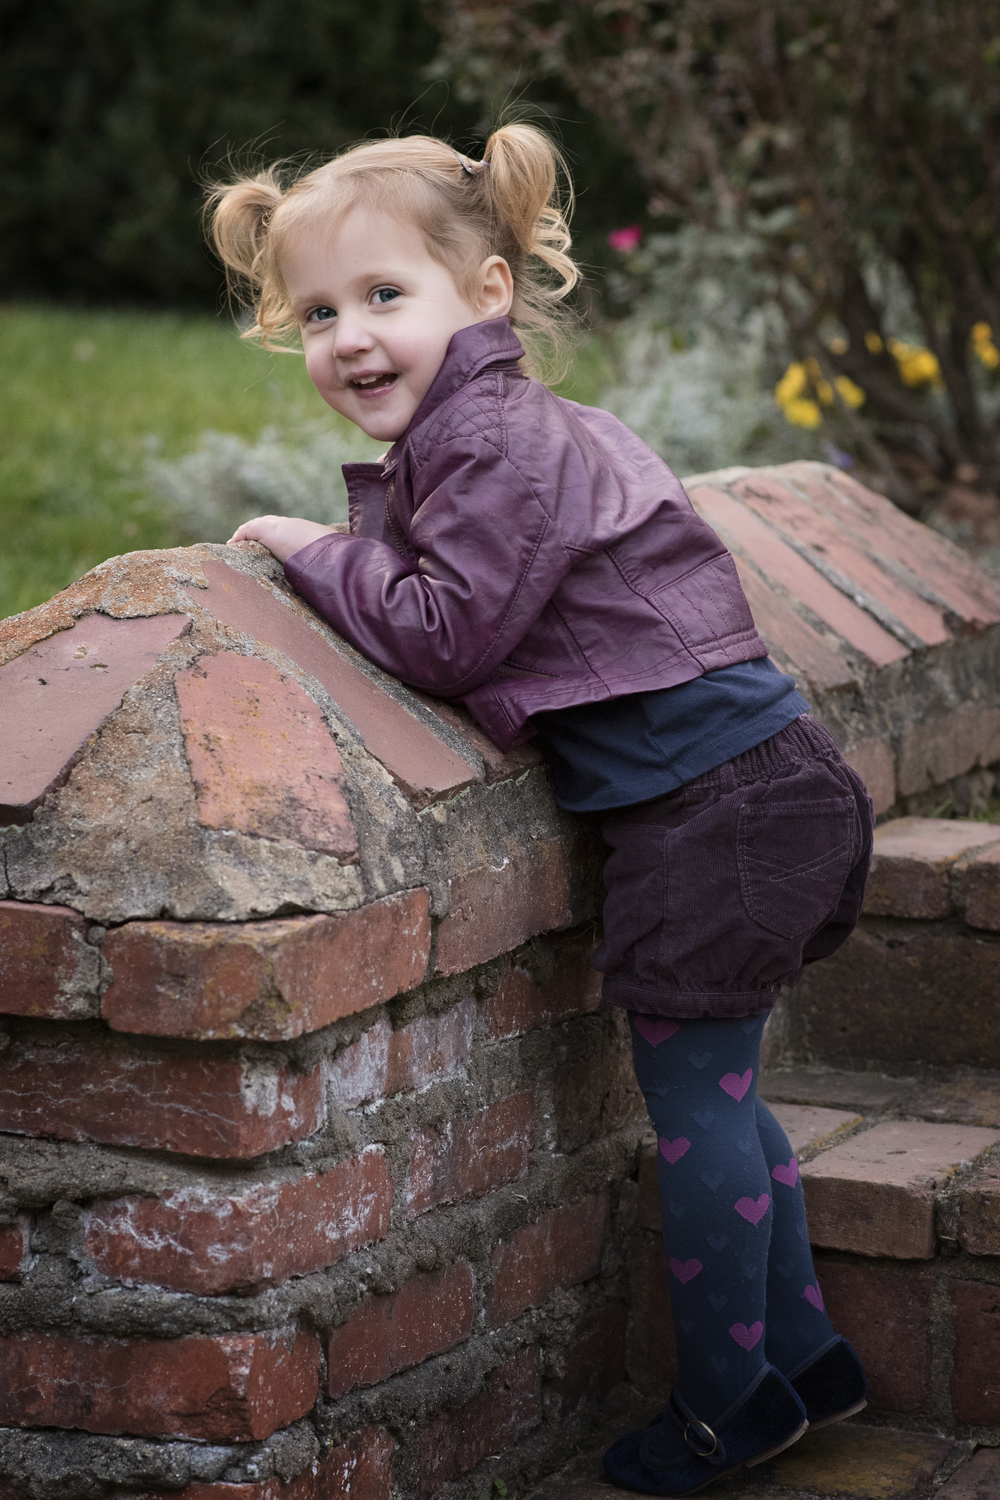 adorable little girl with pigtails and pink tights Childrens Photographer Kate Montaner